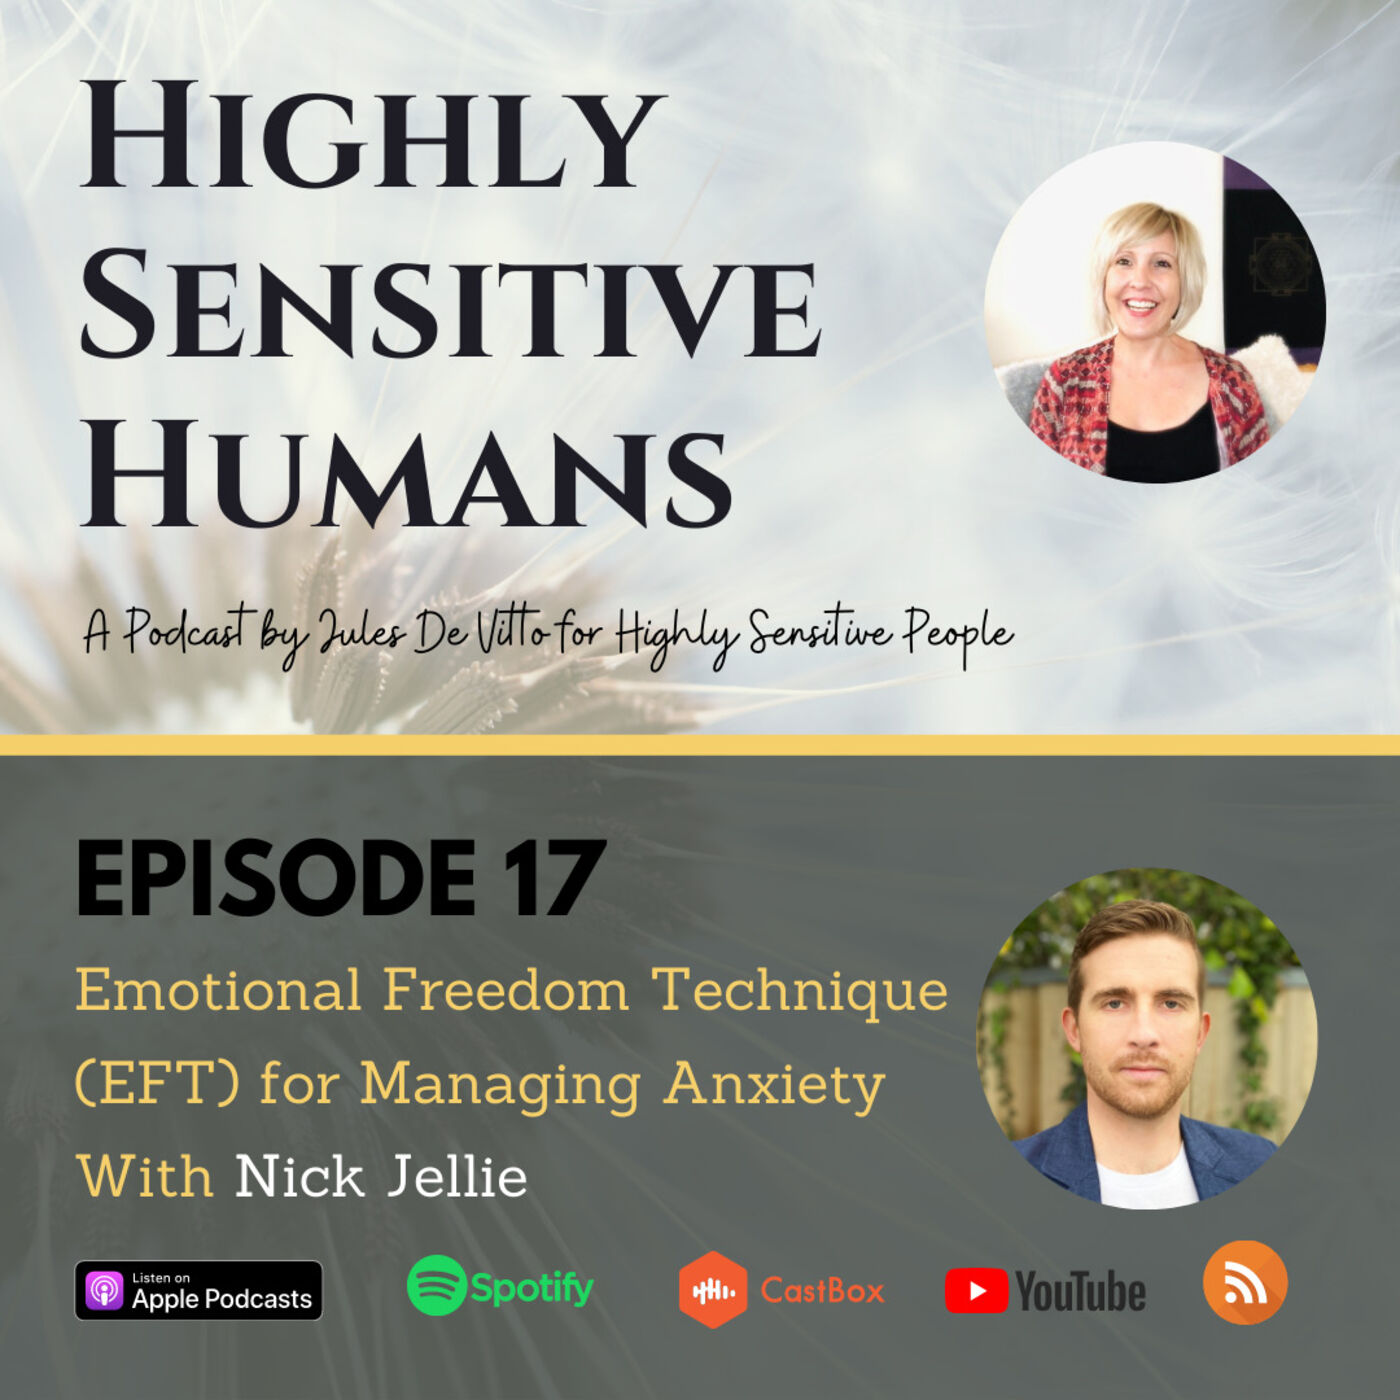 Emotional Freedom Technique (EFT) for Managing Anxiety With Nick Jellie